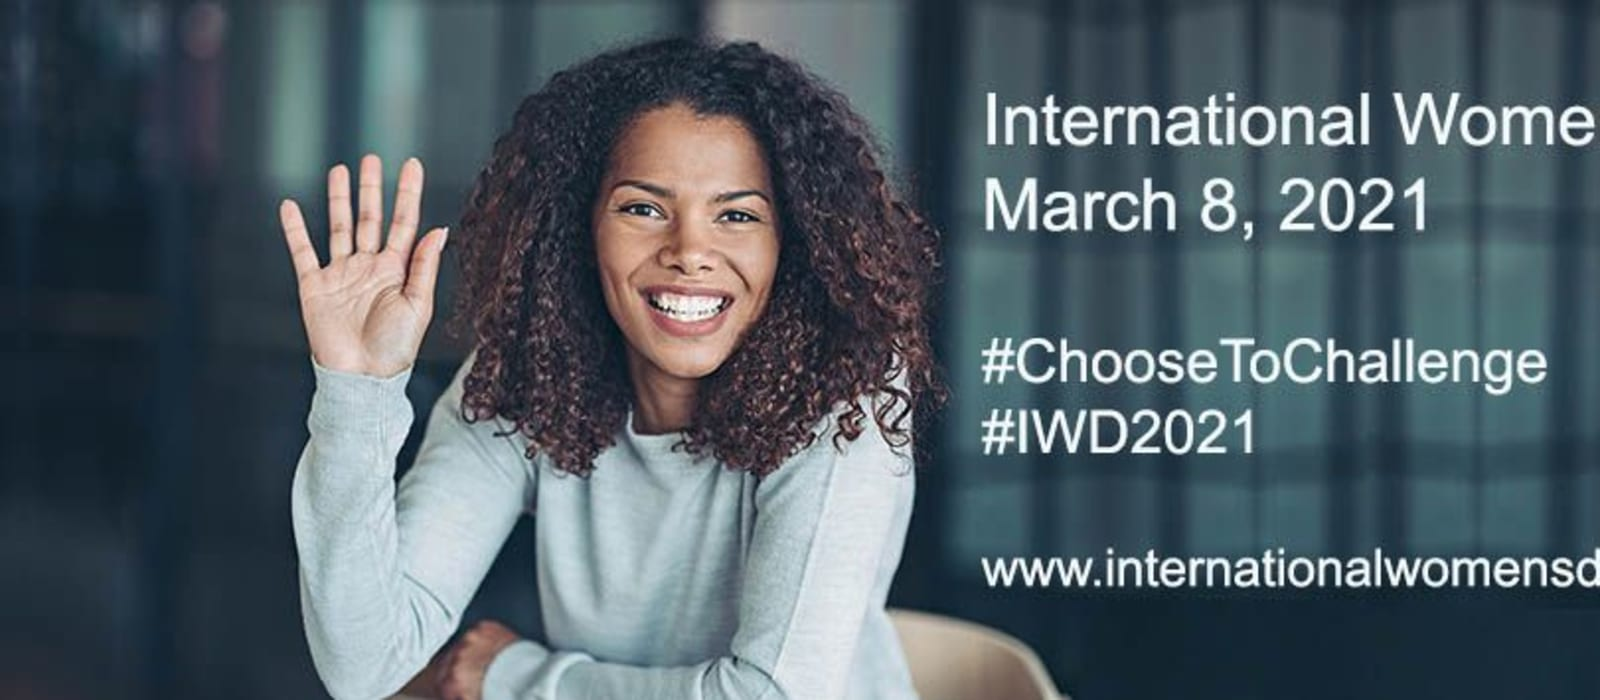 Help the Government Improve Women's Wellbeing this International Women's Day